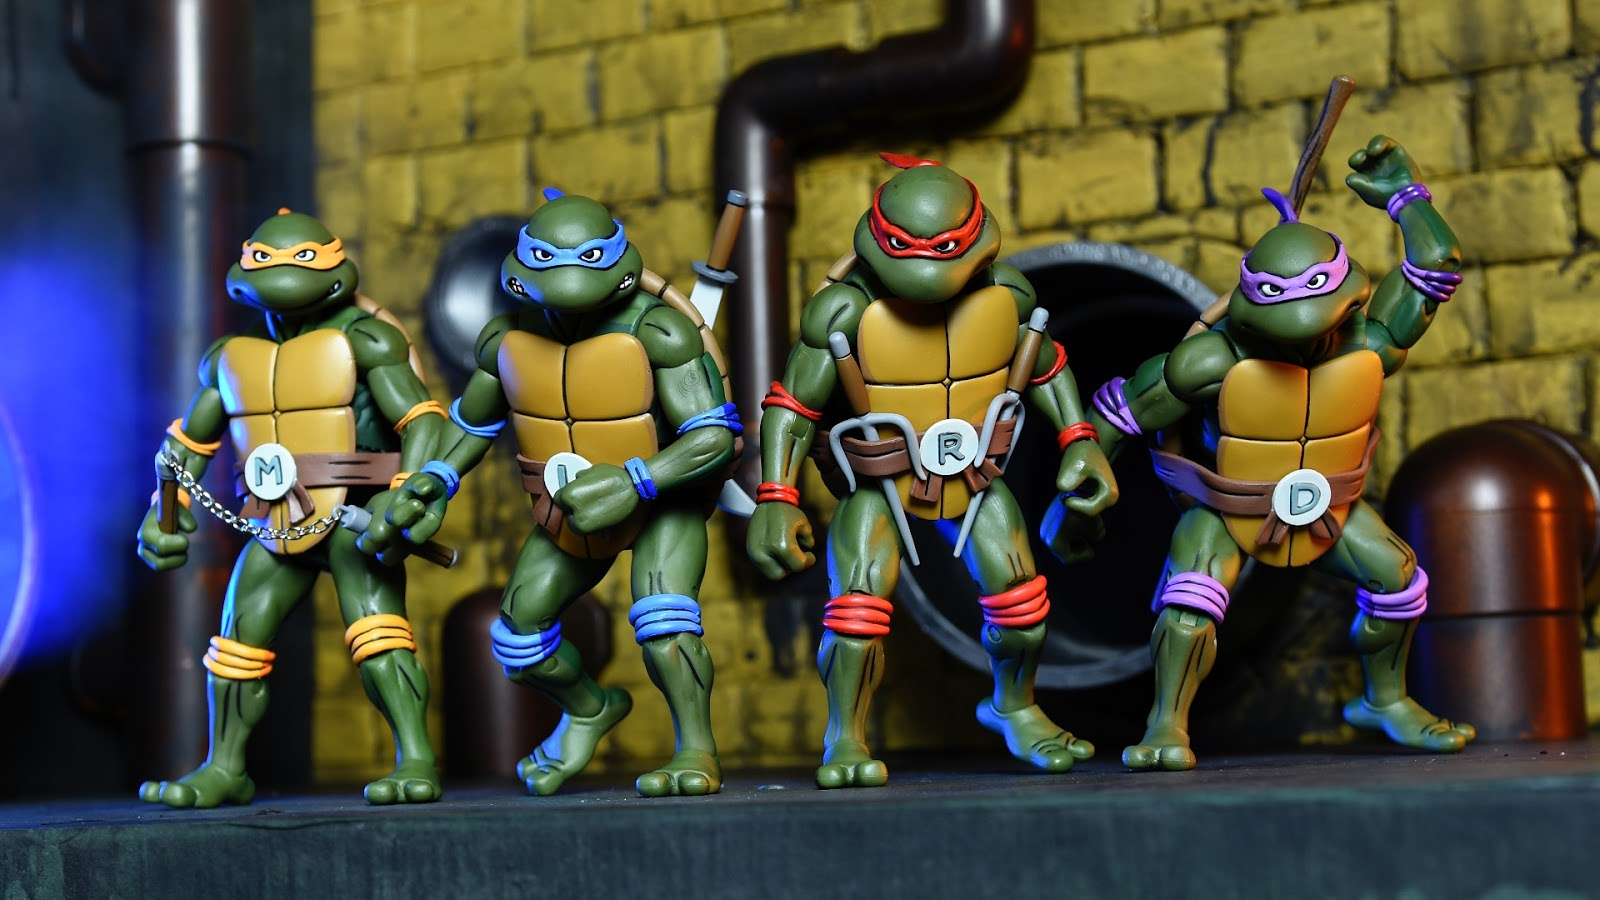 Teenage Mutant Ninja Turtles 2003 Toys : Nickalive neca unveils quot teenage mutant ninja turtles